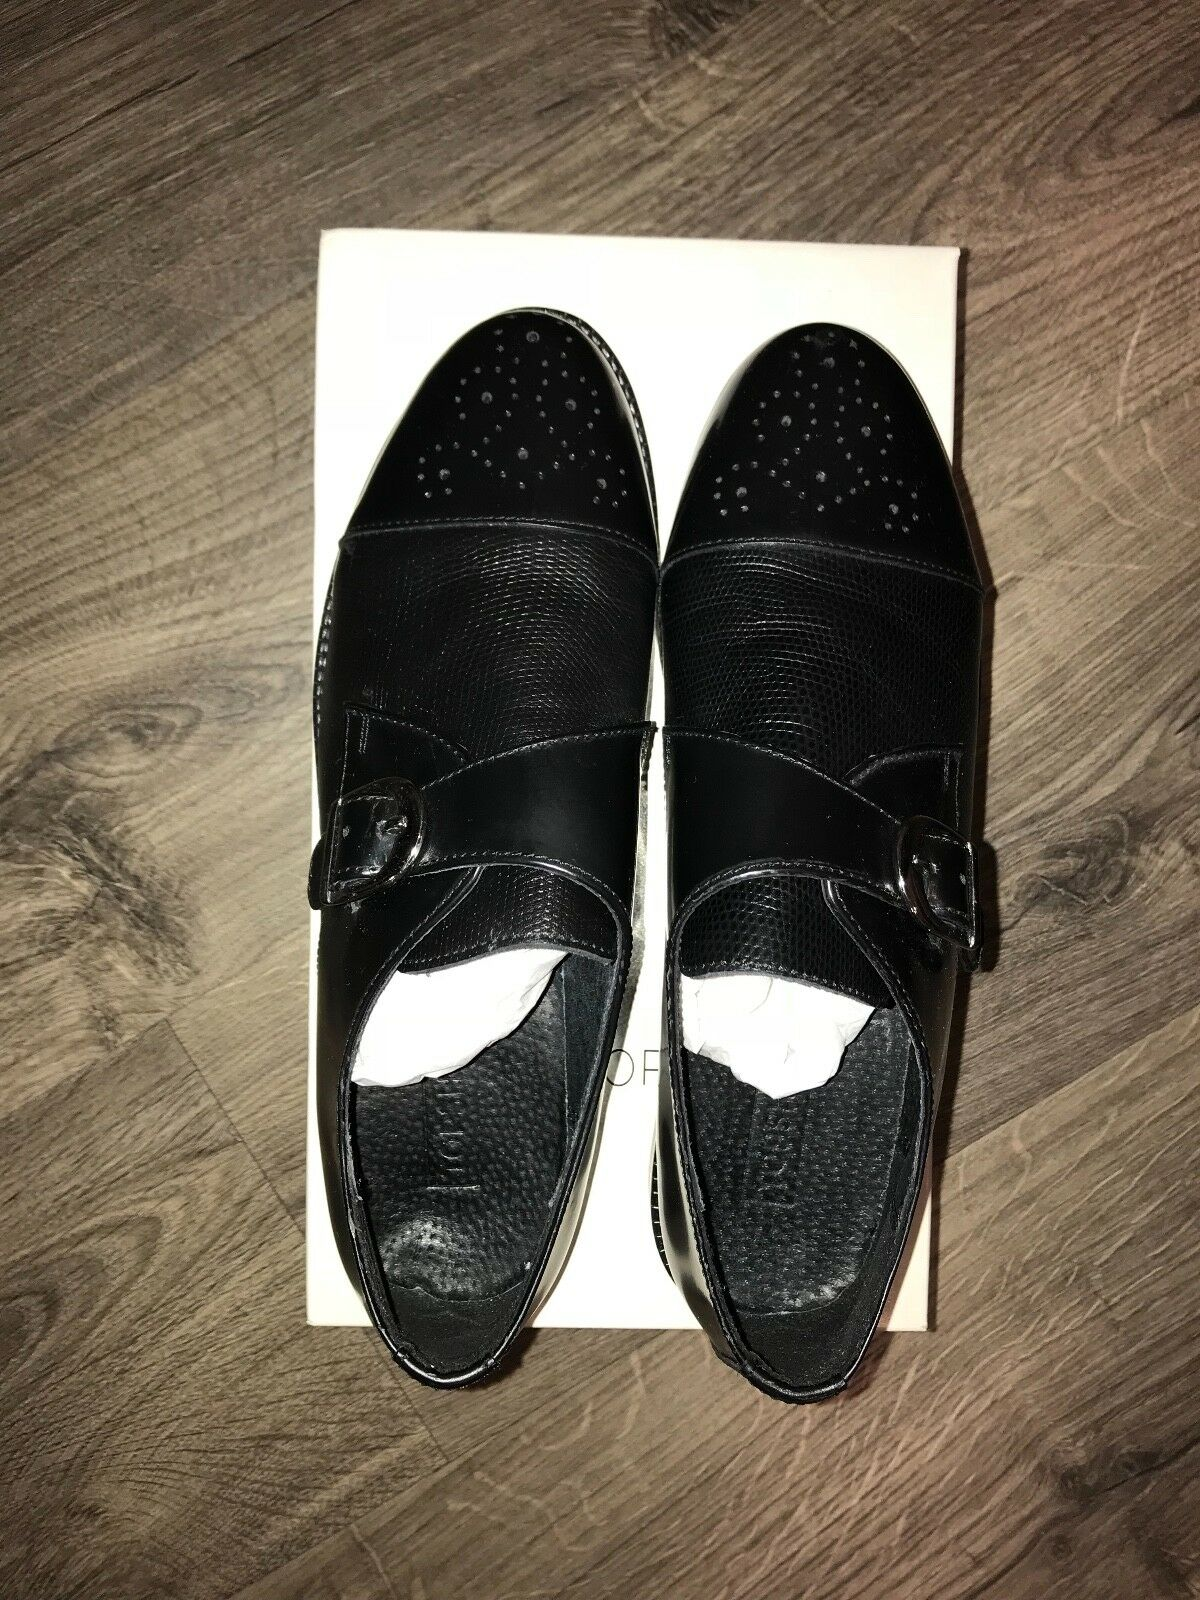 Women's Topshop KAVA KAVA KAVA Brogue Monk shoes size 8.5, black, 100% leather f9f898